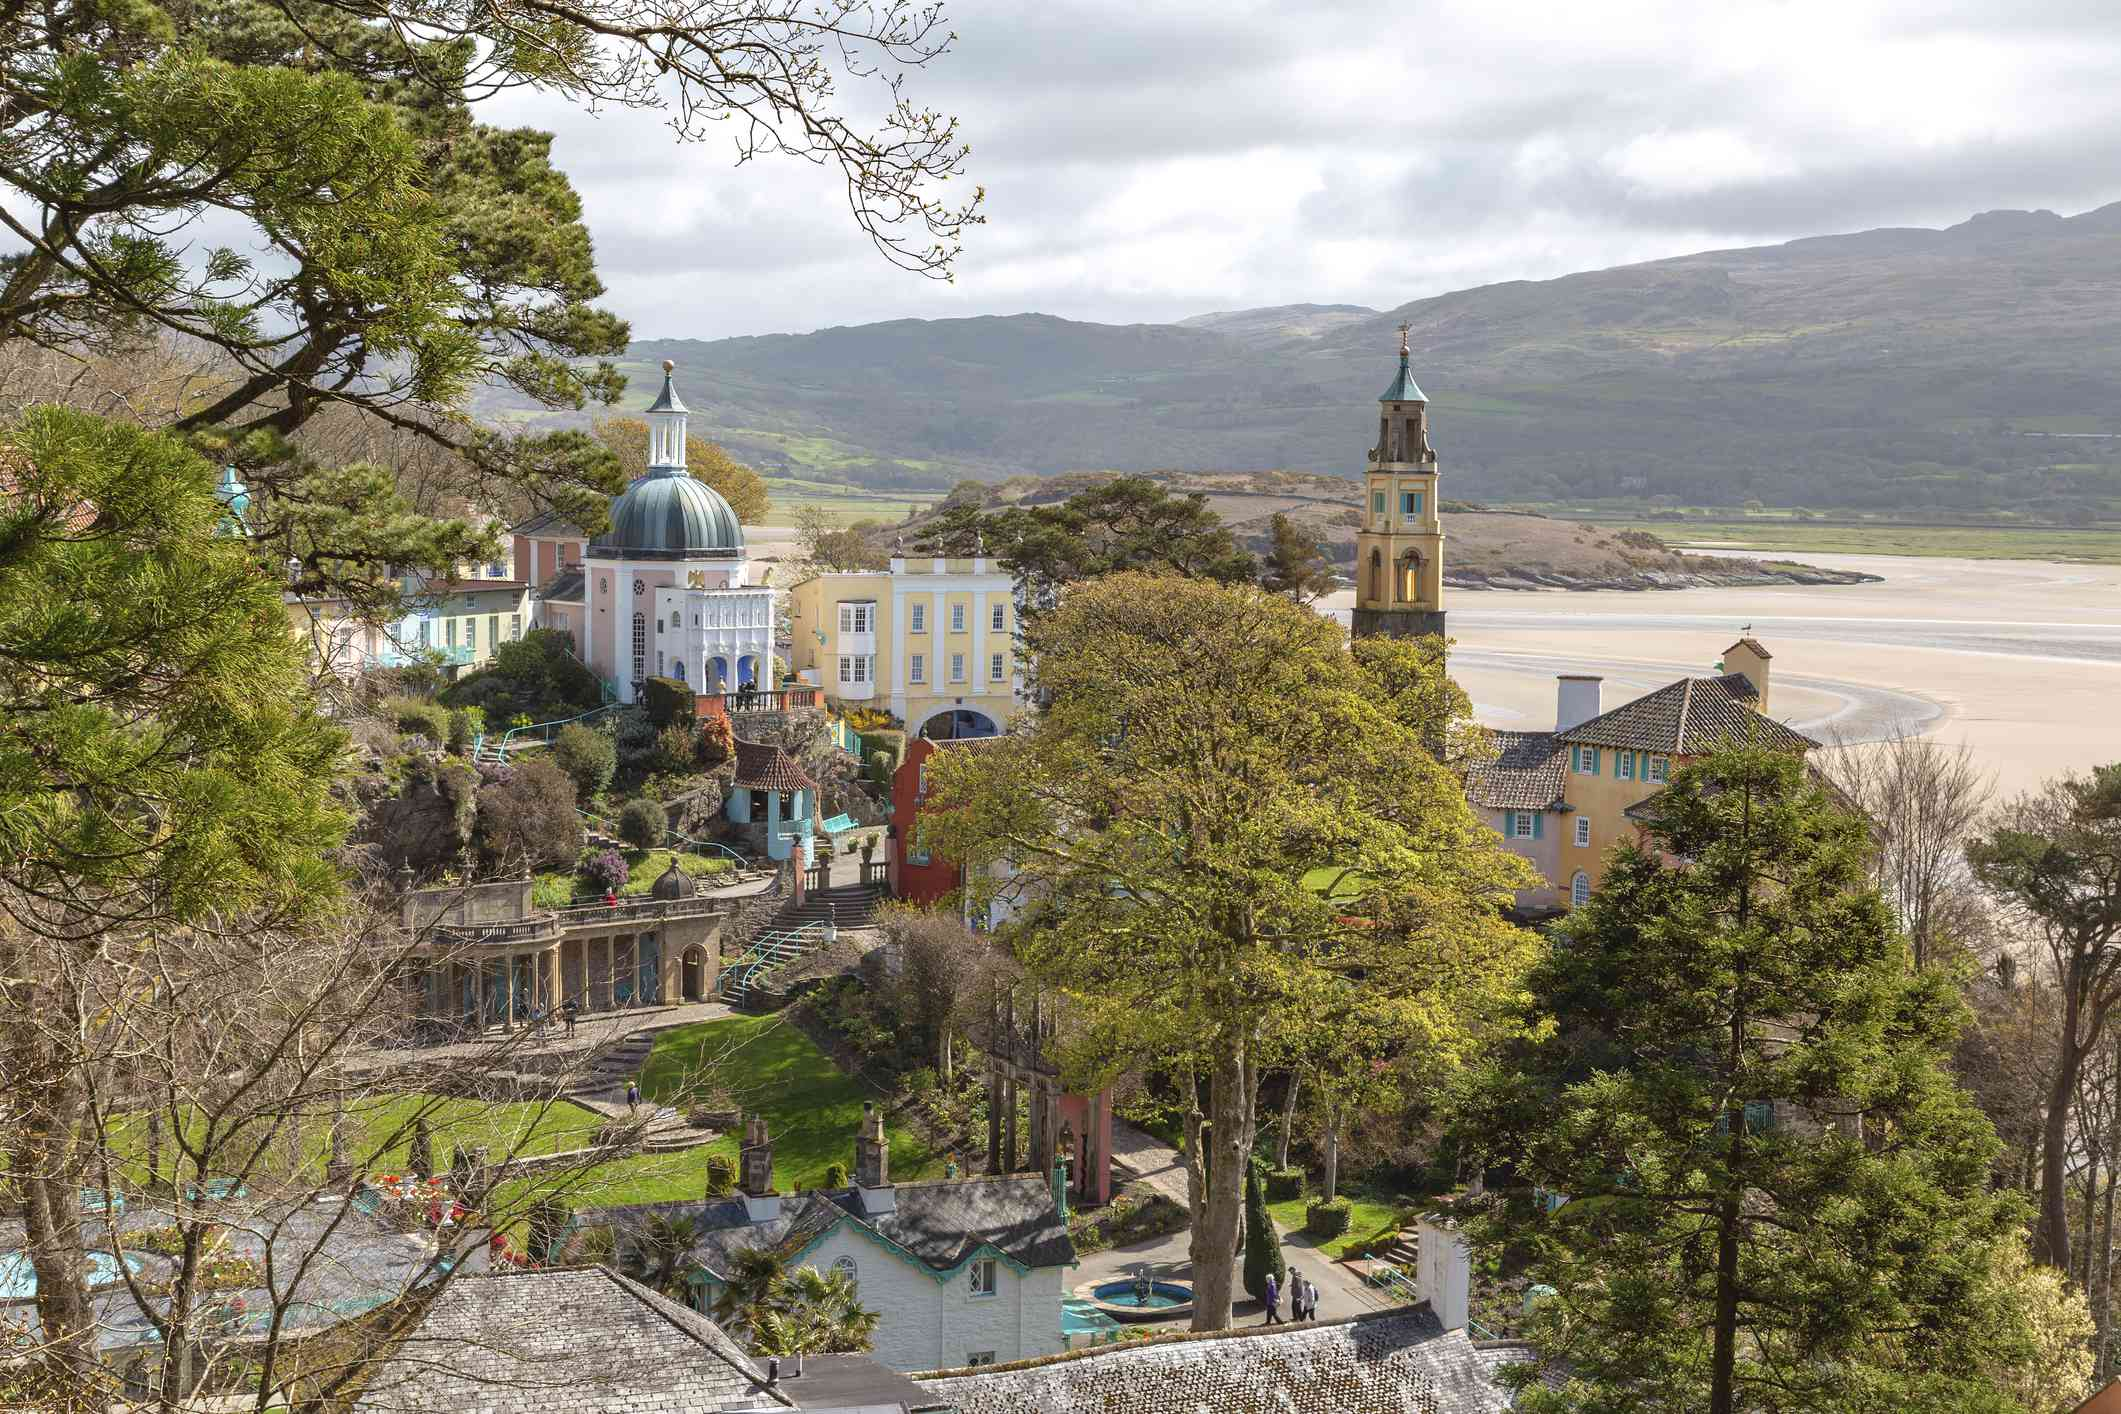 The village of Portmeirion in Wales